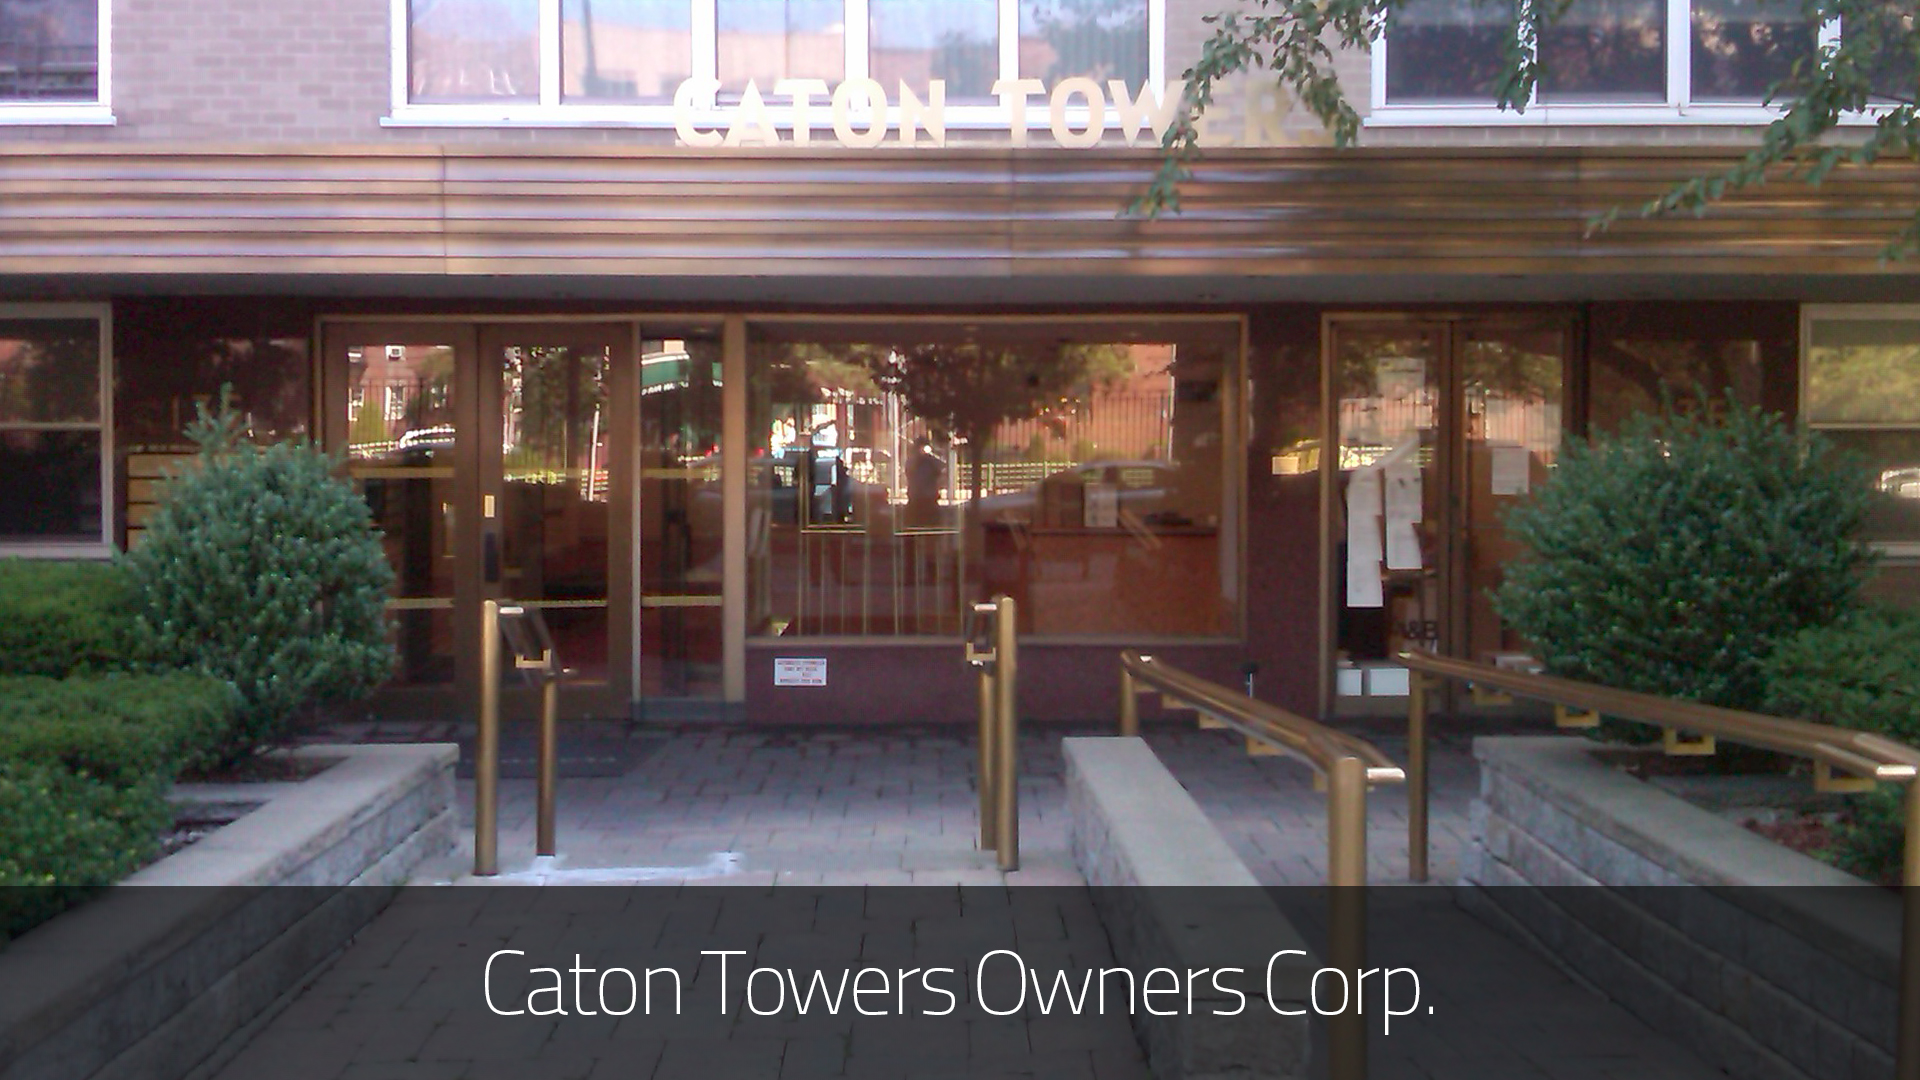 Caton towers owners corp